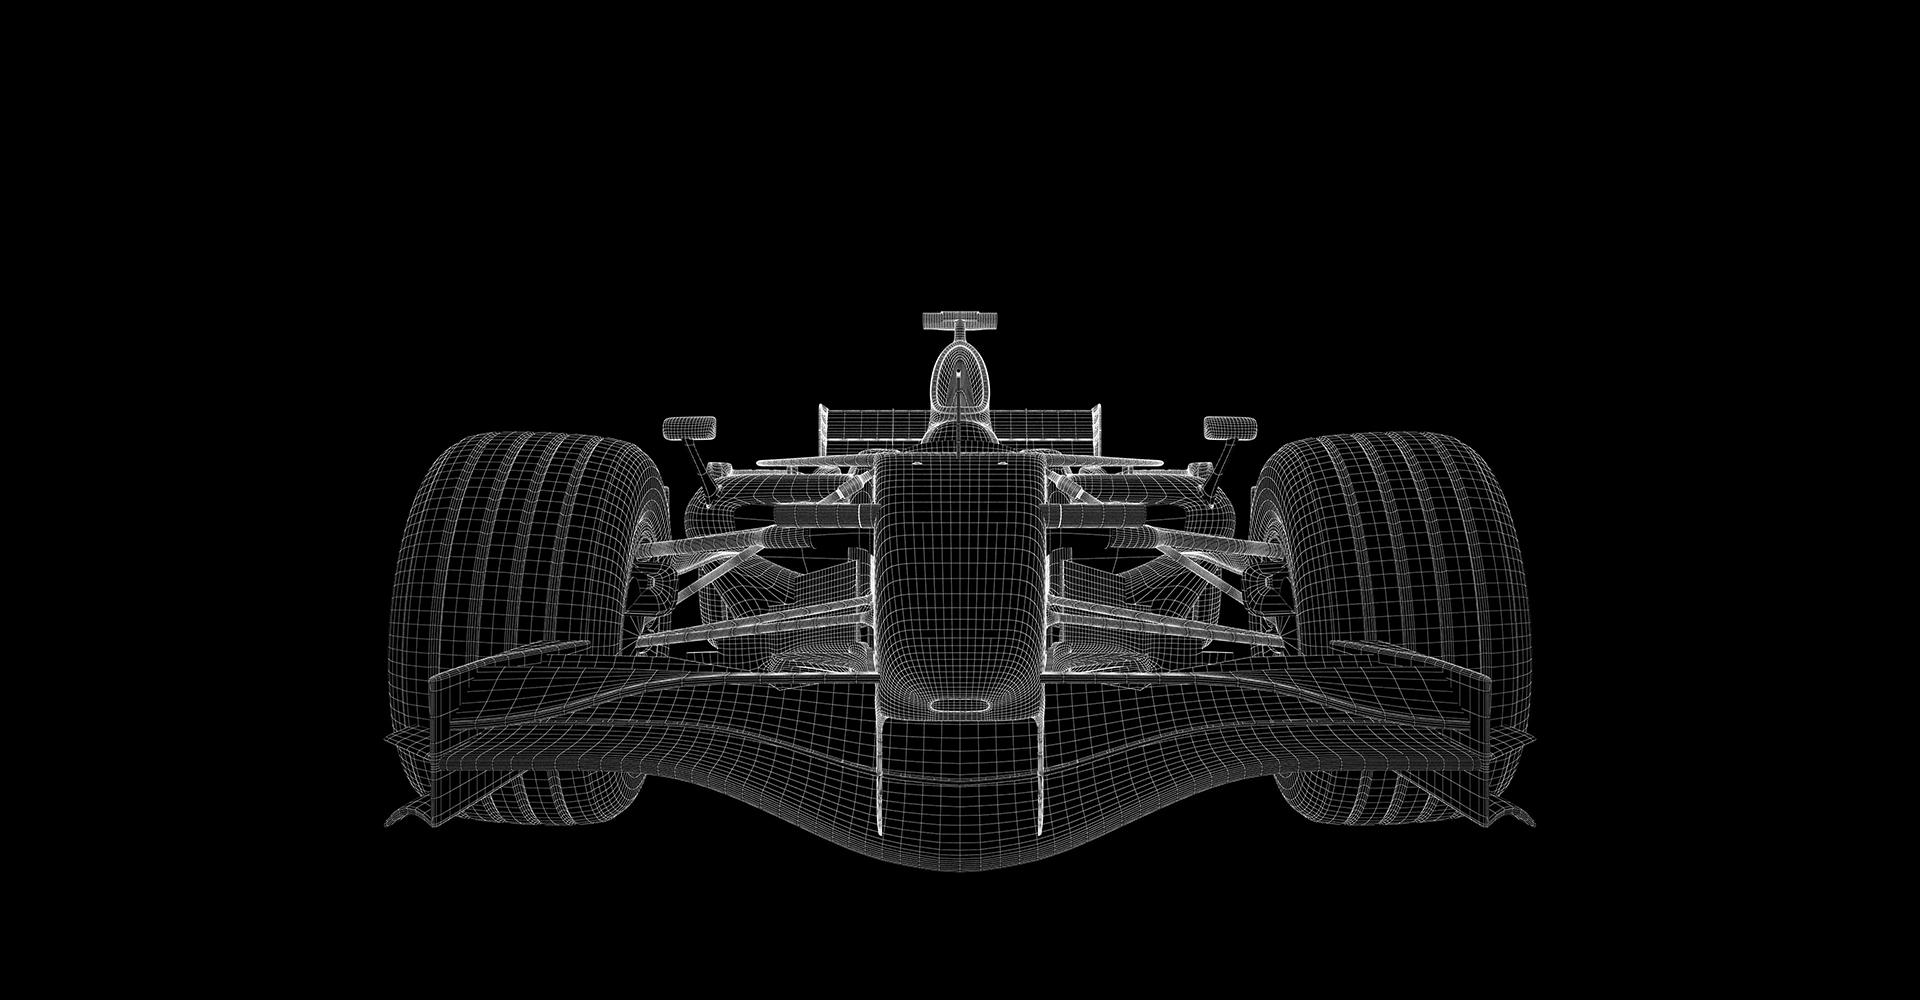 Formula One Car Wireframe Wire Center Digital Voice Recorder Playback Um5100 Electrical Mario Cordova Art F2007 3d Model Website Rh Mariocordova It Diagram Of Dash Sculpture